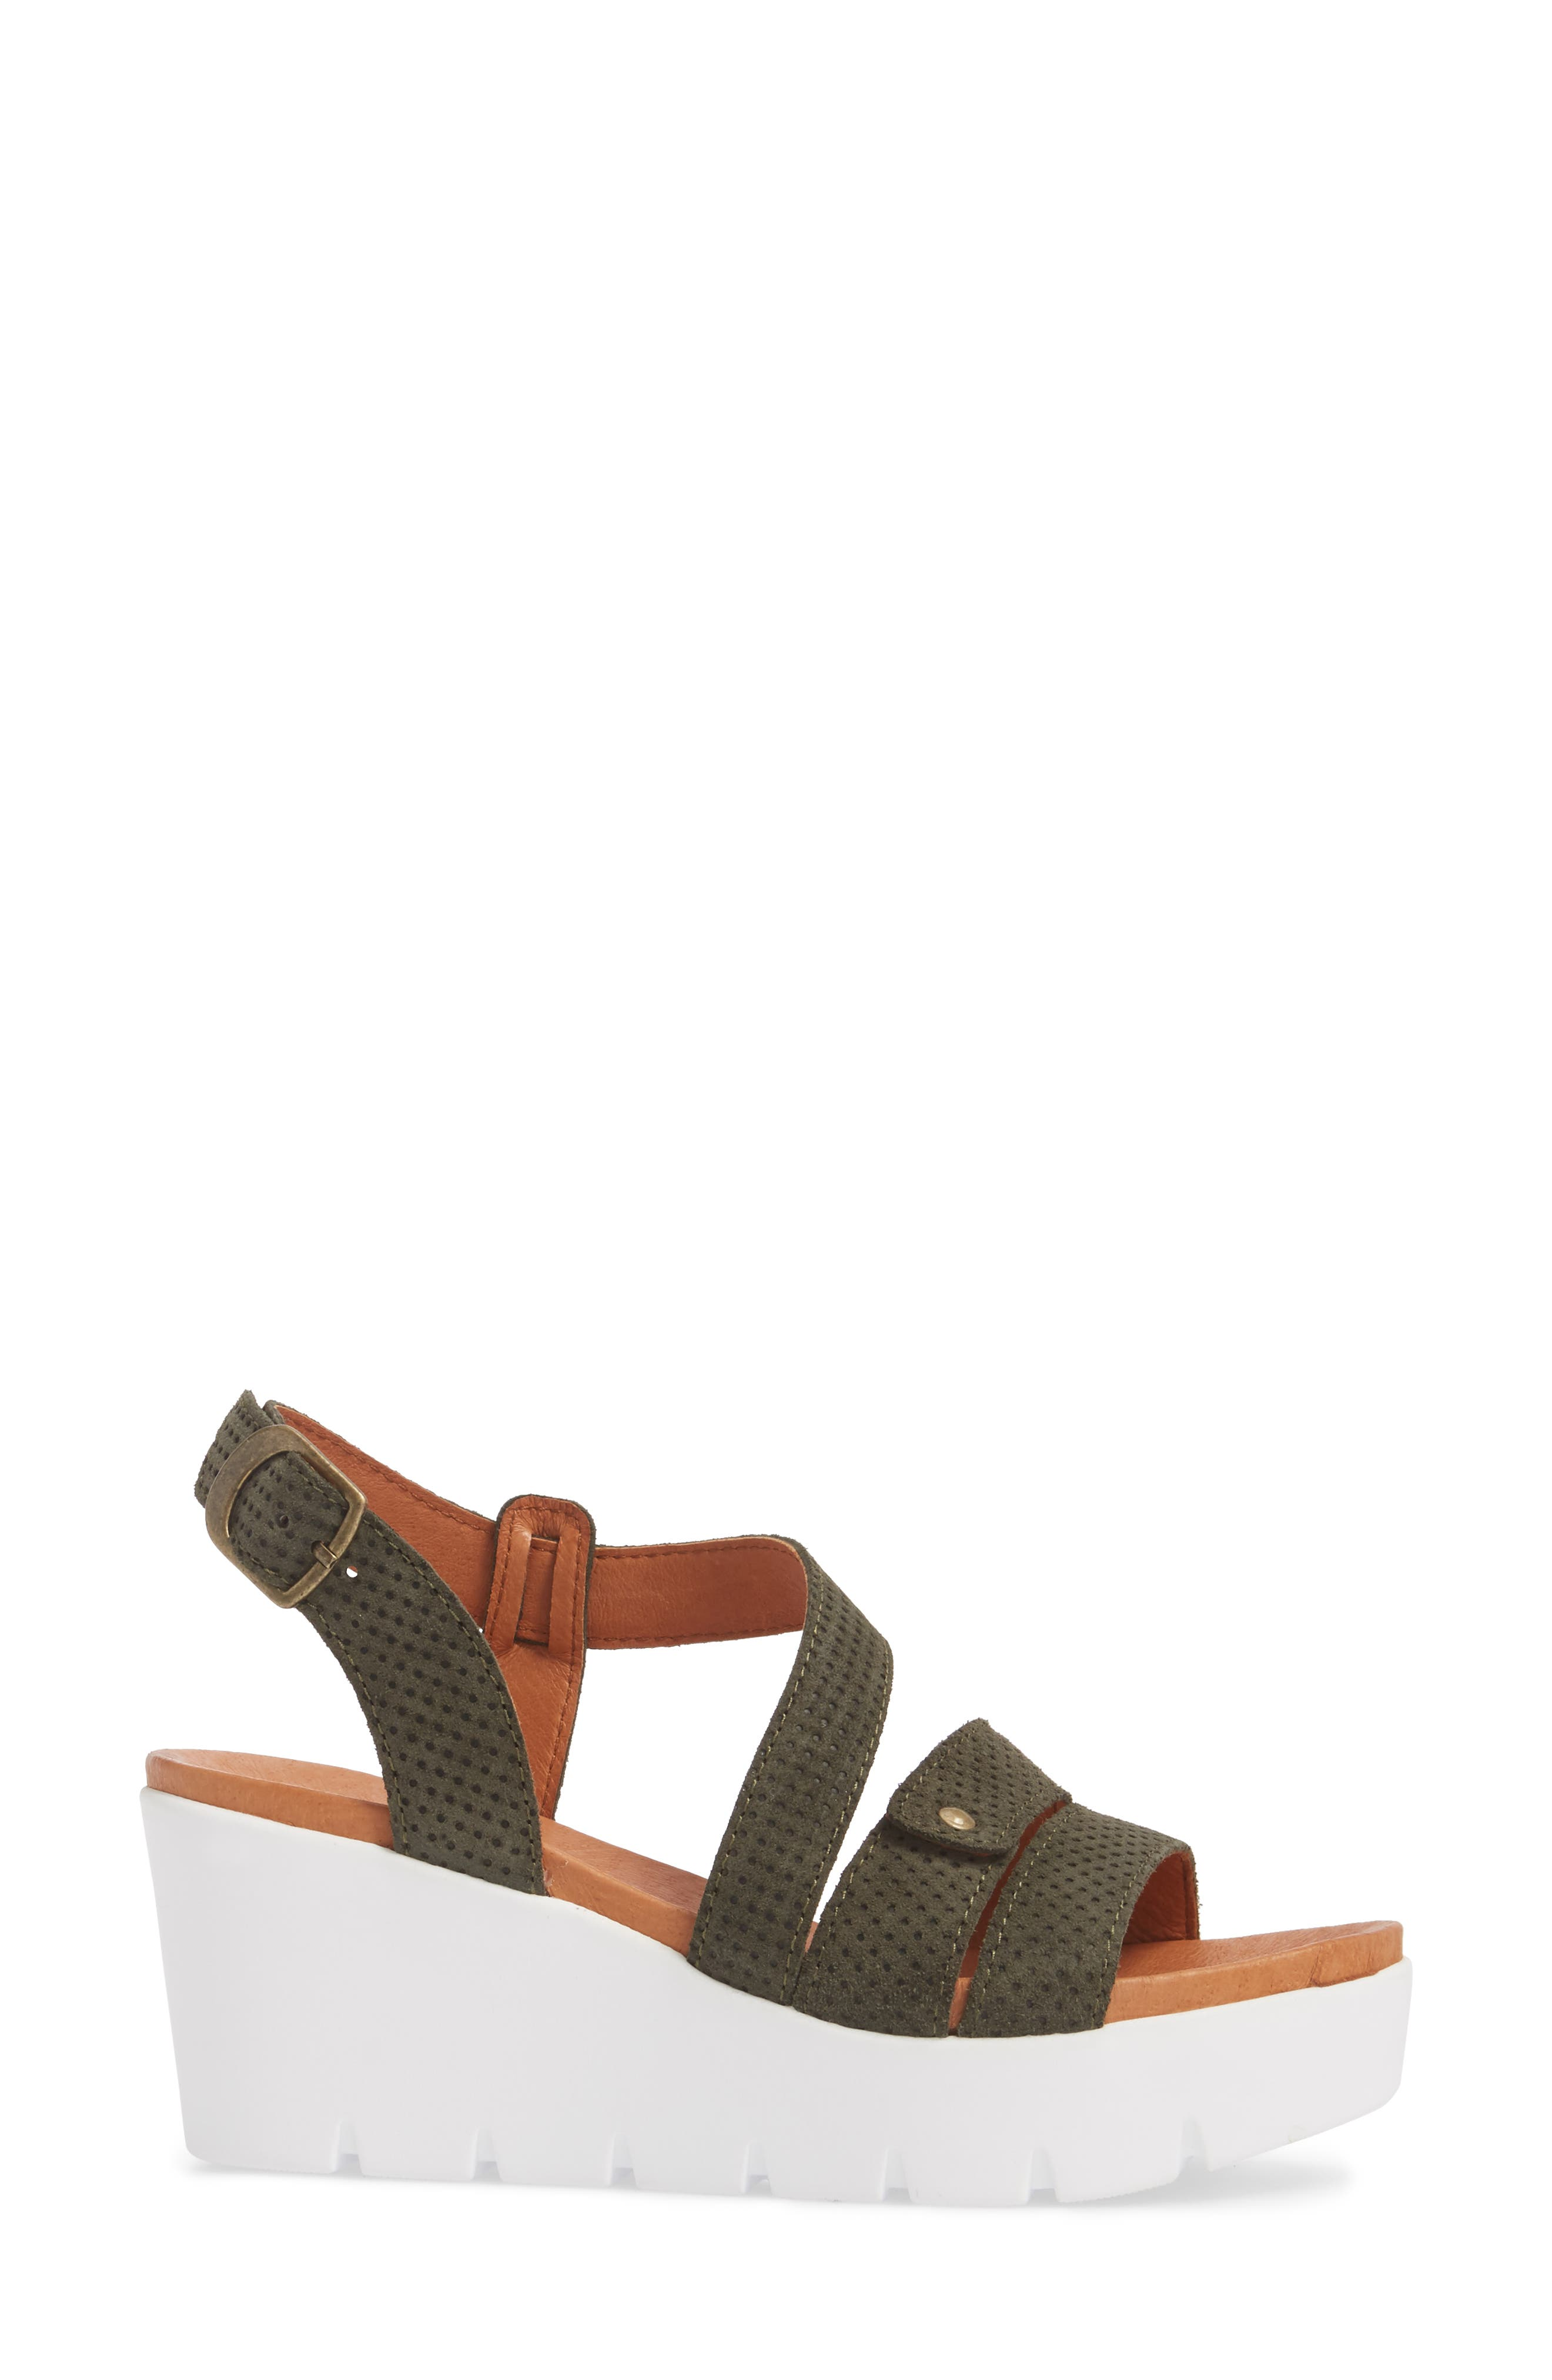 Sierra Platform Wedge Sandal,                             Alternate thumbnail 3, color,                             MINT LEATHER